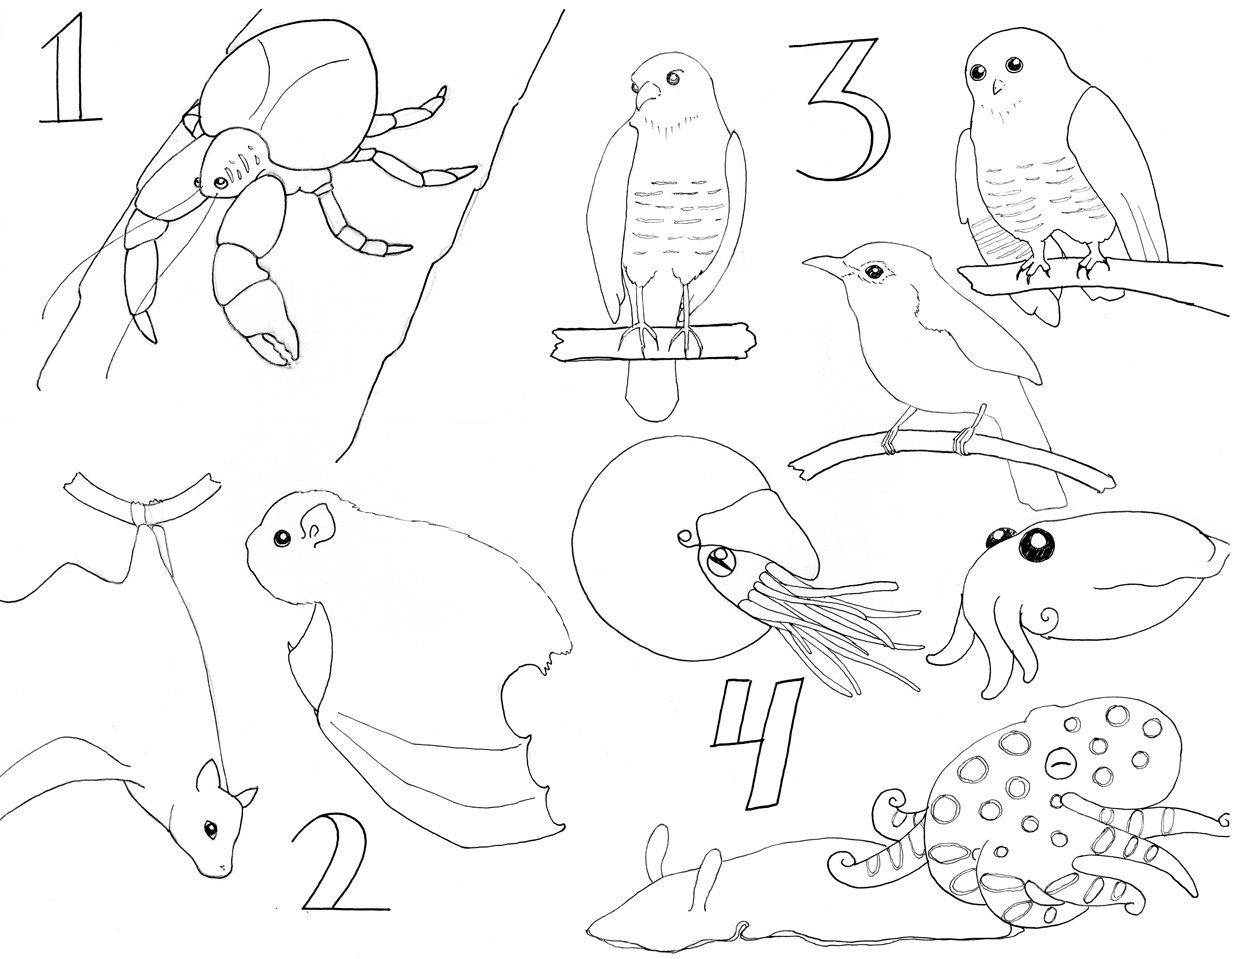 arthropods coloring pages coloring pages. Black Bedroom Furniture Sets. Home Design Ideas